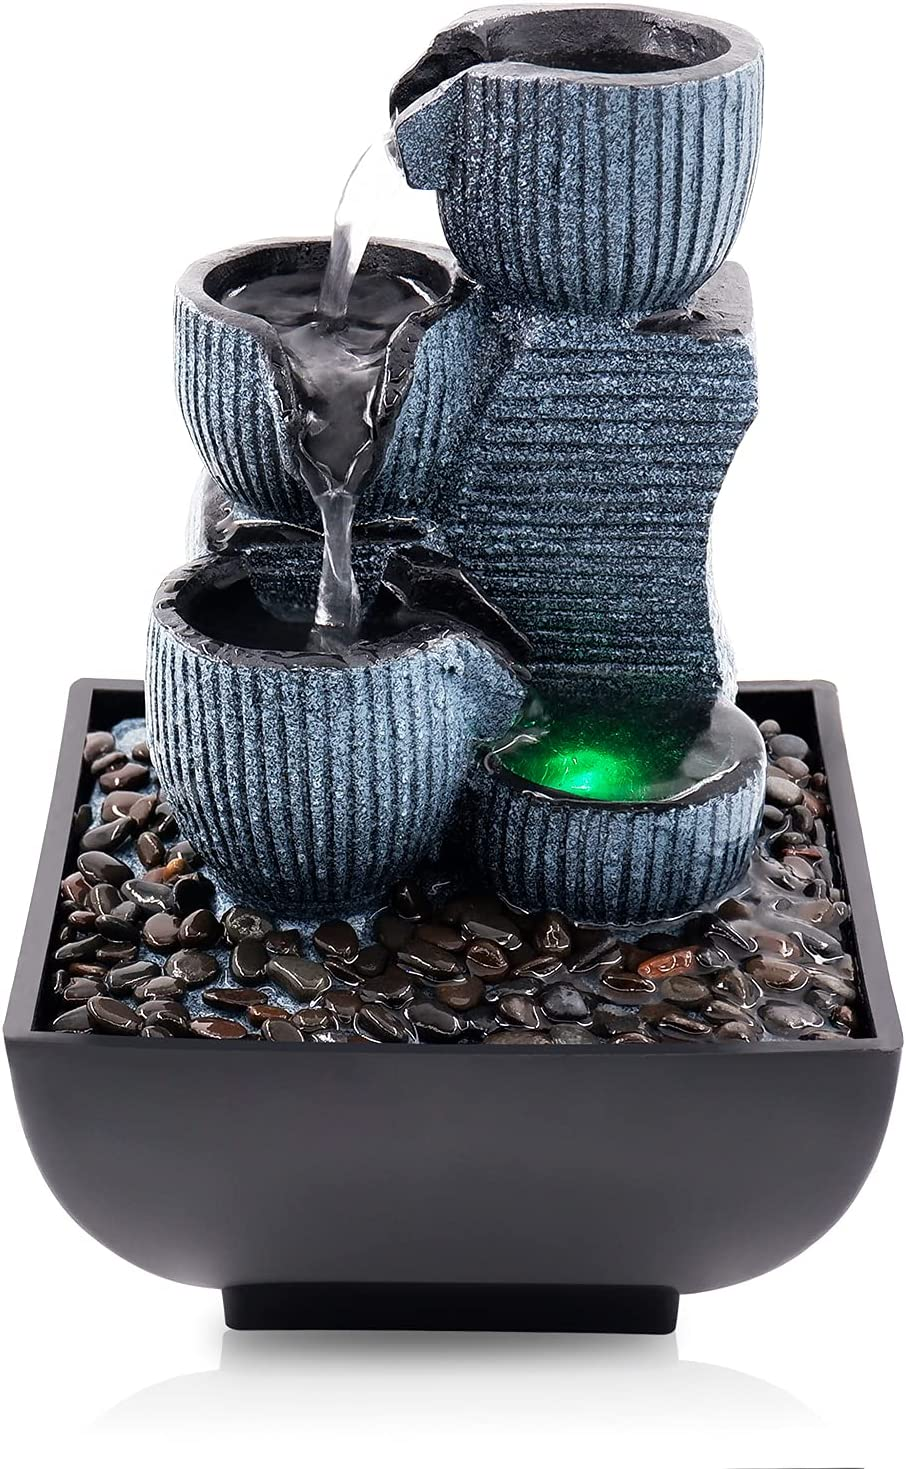 Living Water Fountain with Led Ball Submersible Pump Table Decorative Fountain Feng Shui Waterfall Fountain, Modern Home Office Living Room Decoration Home Gift to Friends